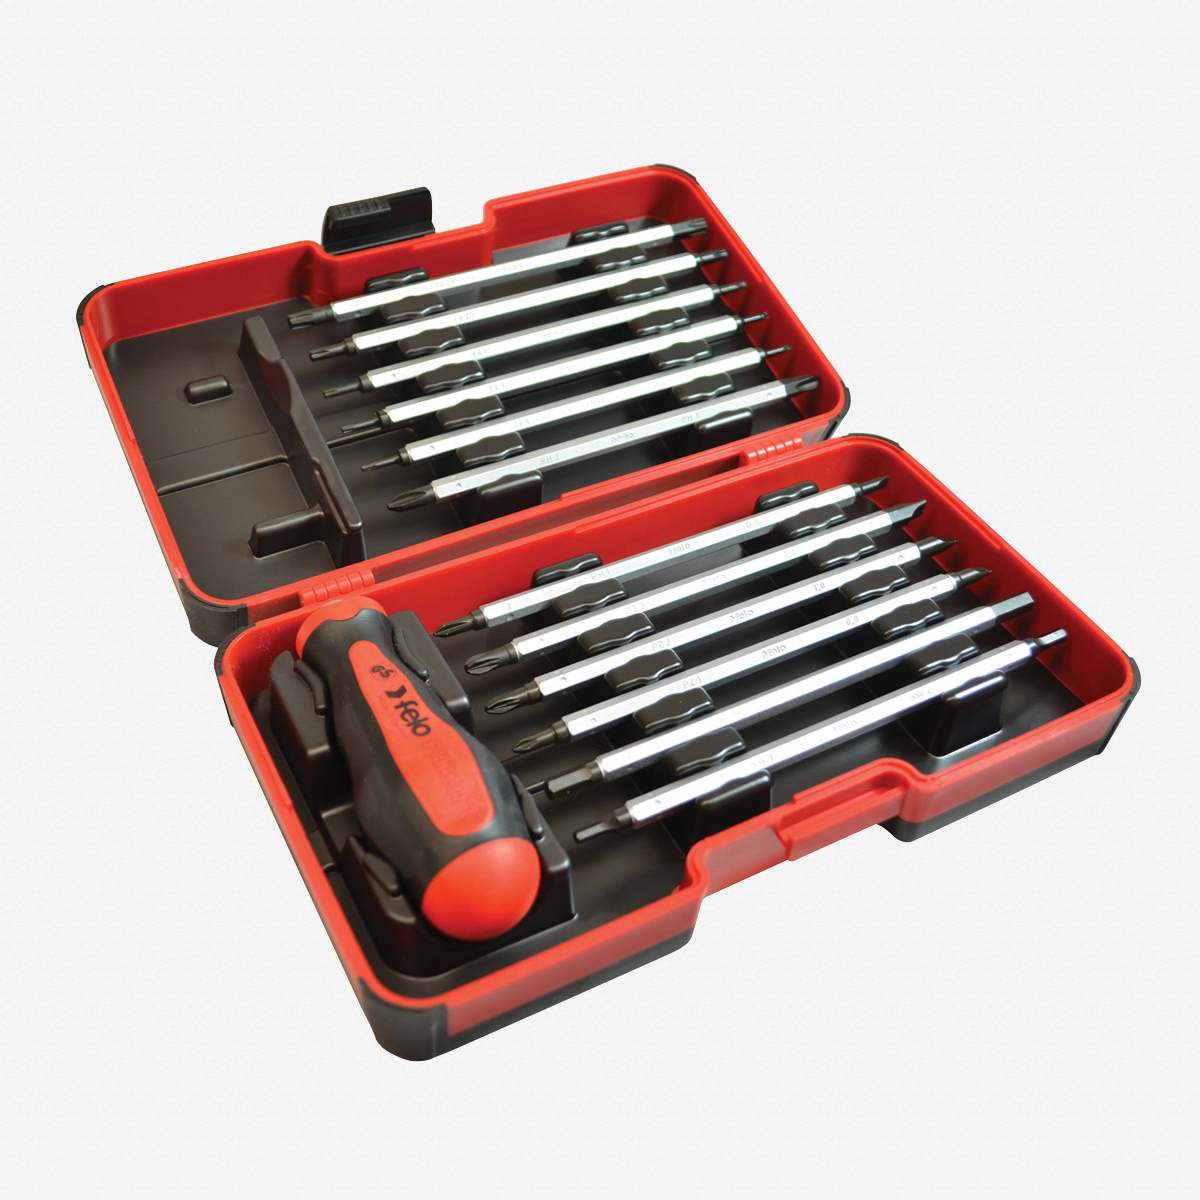 Felo 32094 13 piece Metric Smart Box - Slotted, Phillips, Pozidriv, Hex, Torx Tip Blades with Handle - KC Tool